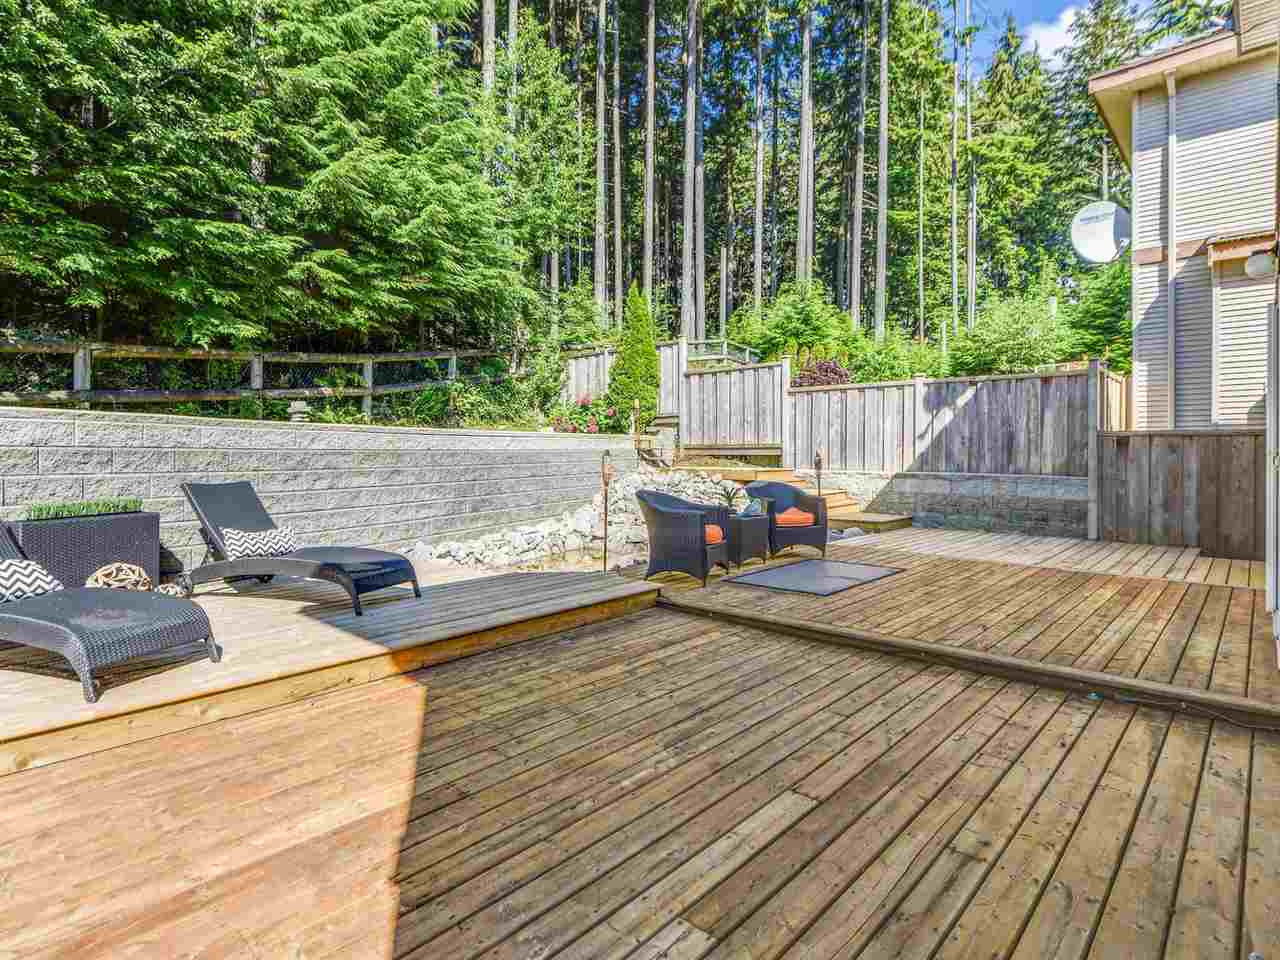 Photo 10: 3392 PLATEAU Boulevard in Coquitlam: Westwood Plateau House for sale : MLS® # R2093003